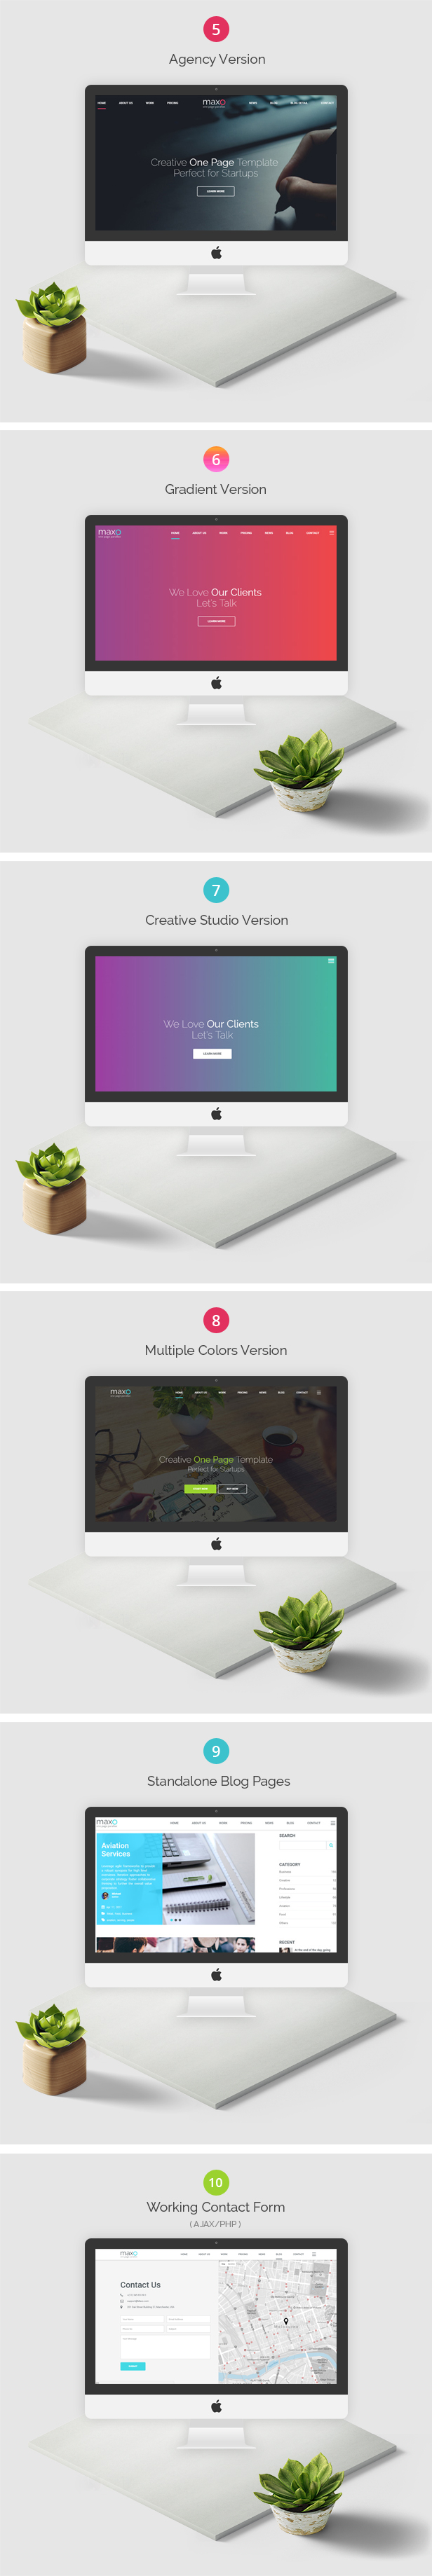 Maxo - One Page Parallax - 3